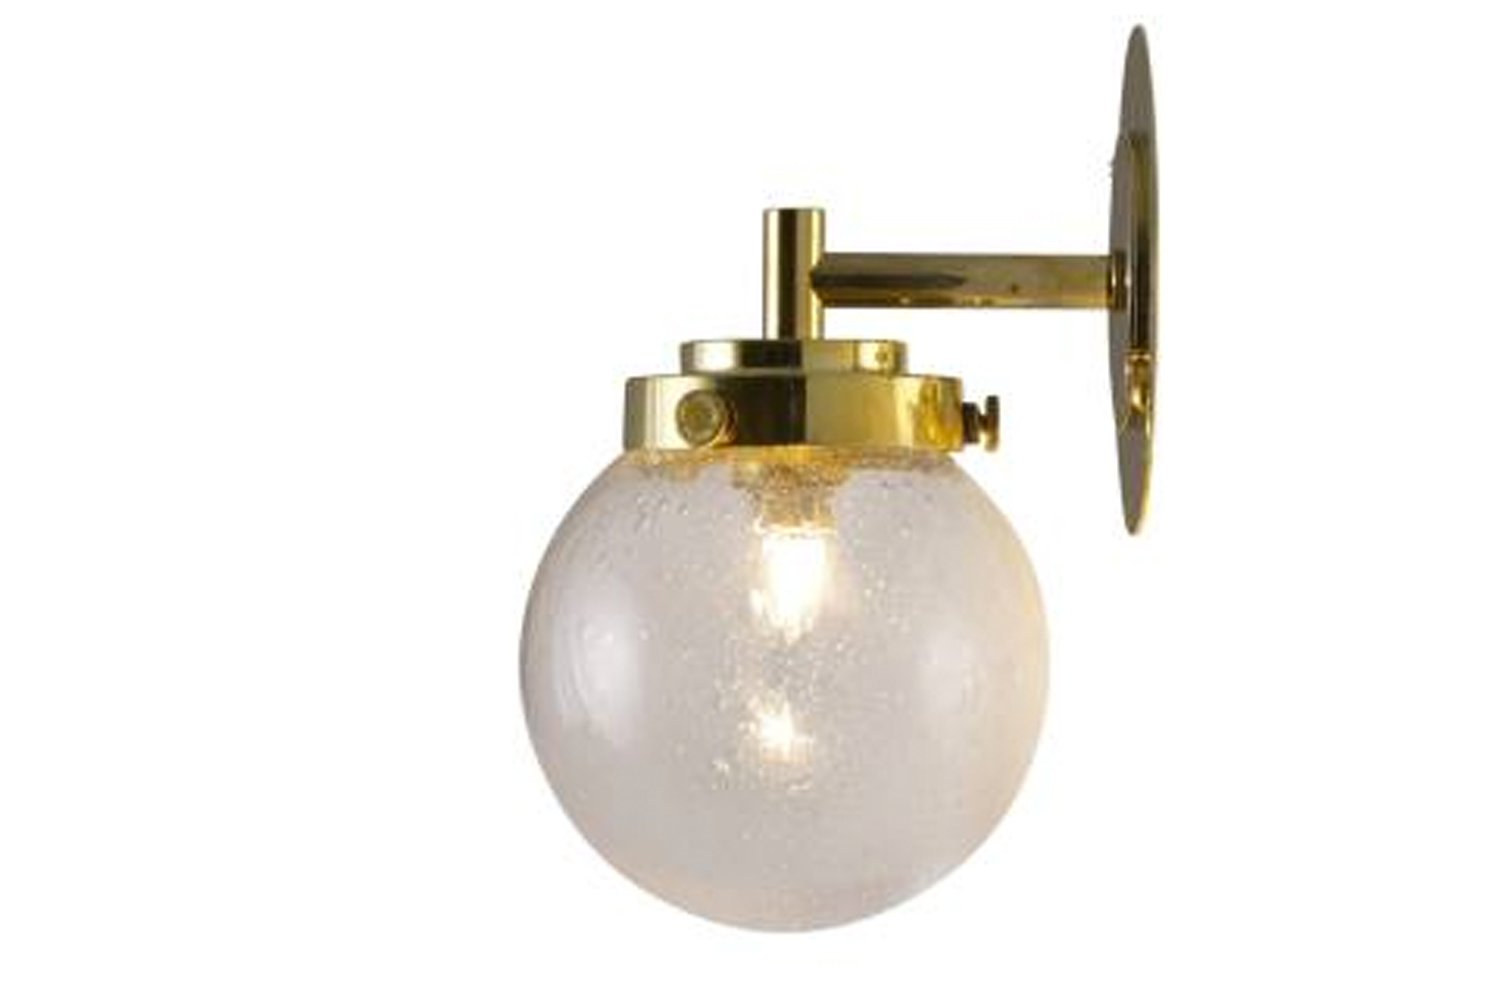 The new Mini Globe wall light integrates the same Art Deco cues within its metal fixtures and features a compact (120mm) glass globe.